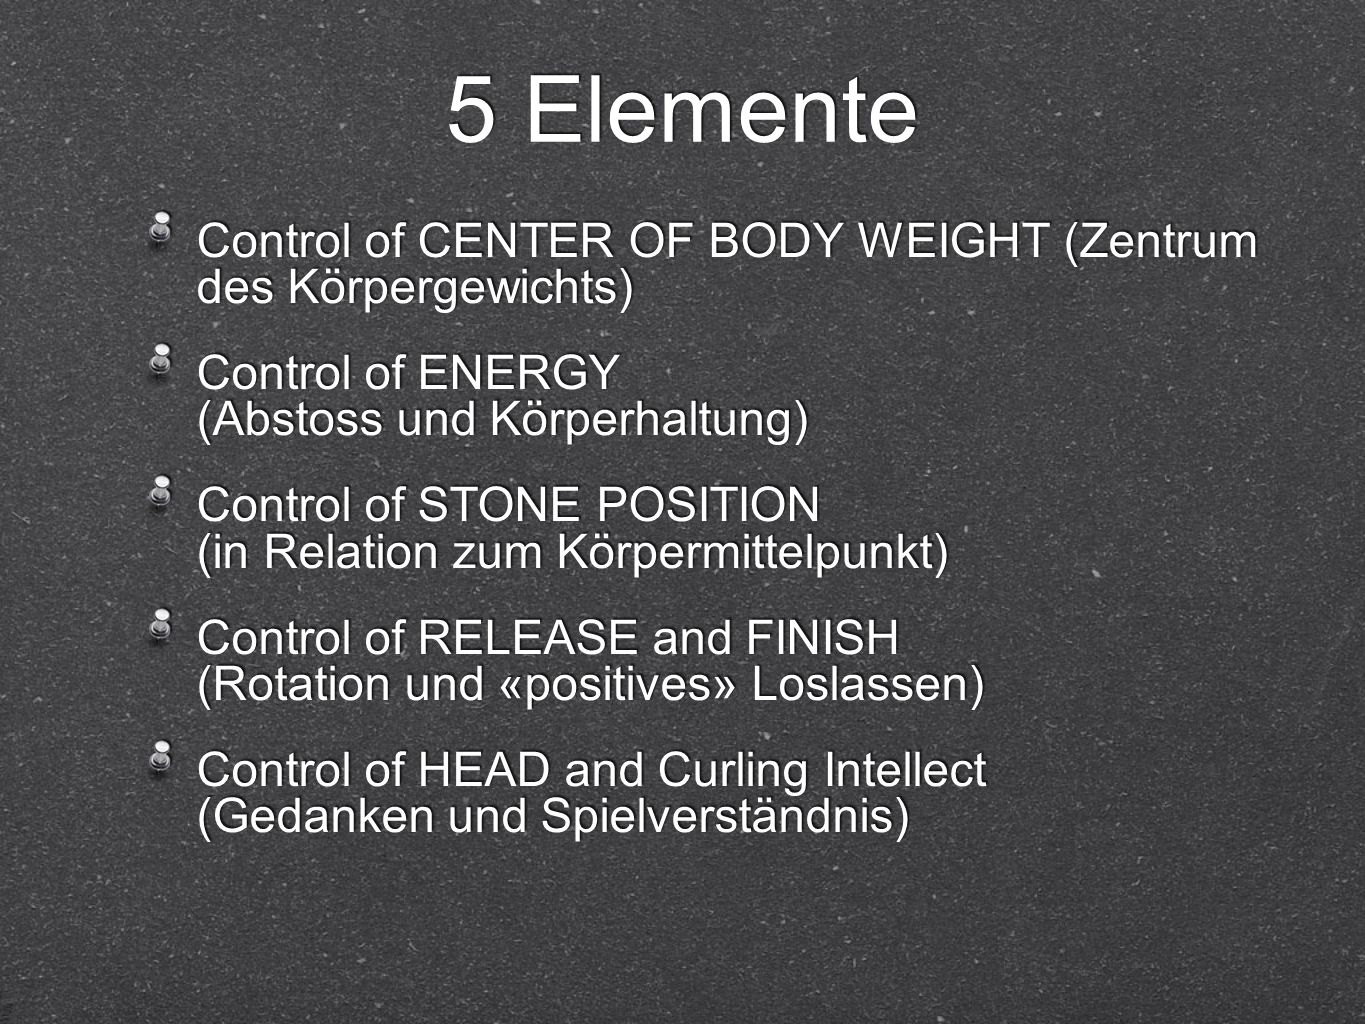 5 Elemente Control of CENTER OF BODY WEIGHT (Zentrum des Körpergewichts) Control of ENERGY (Abstoss und Körperhaltung) Control of STONE POSITION (in R